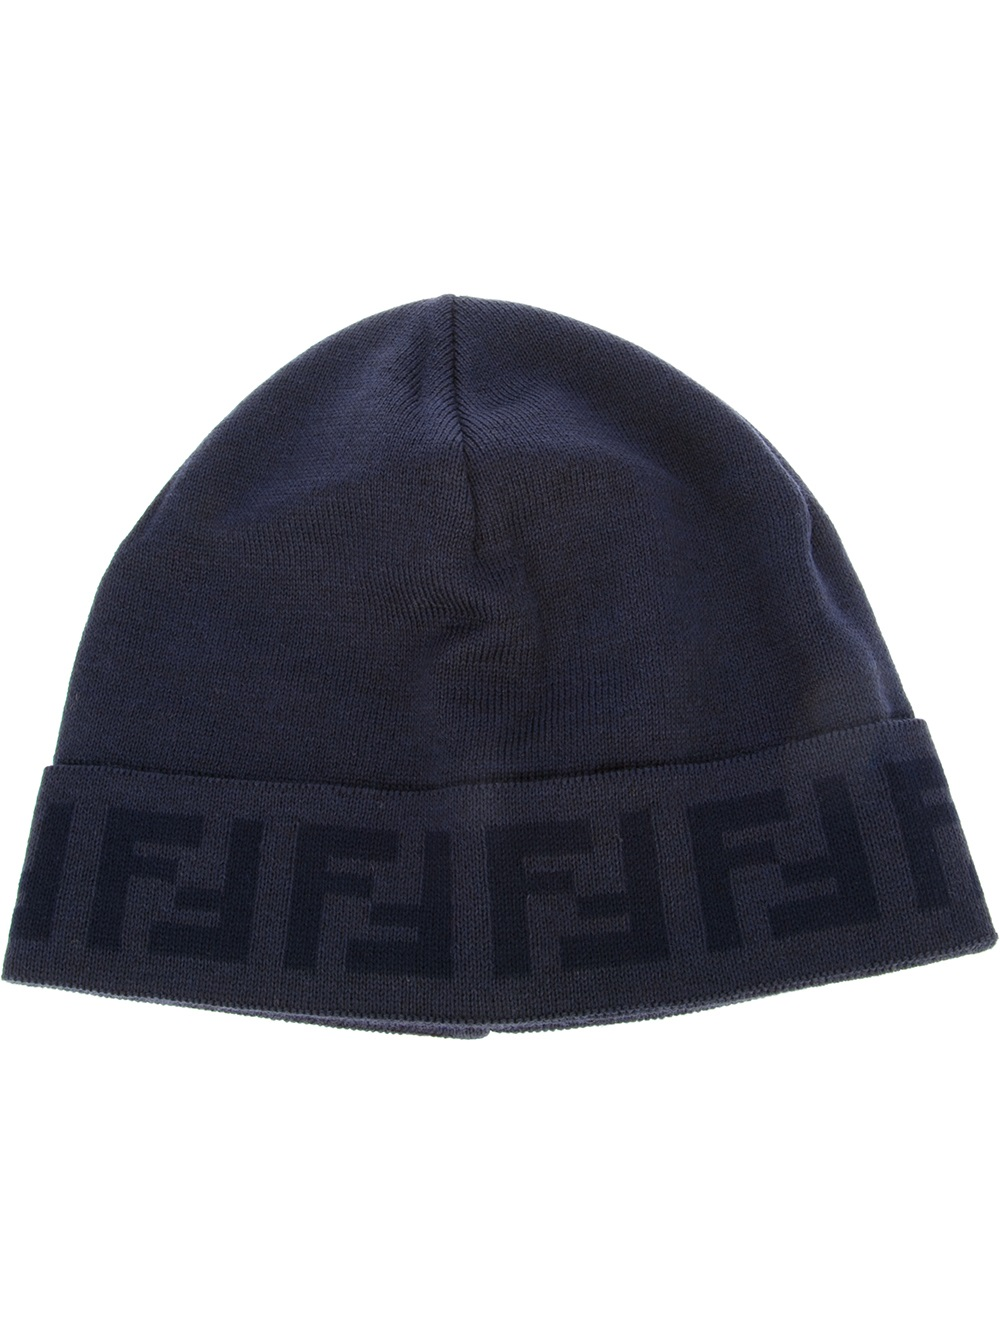 19281e07cfe Gallery. Previously sold at  Farfetch · Women s Wool Hats Women s Beanies  ...